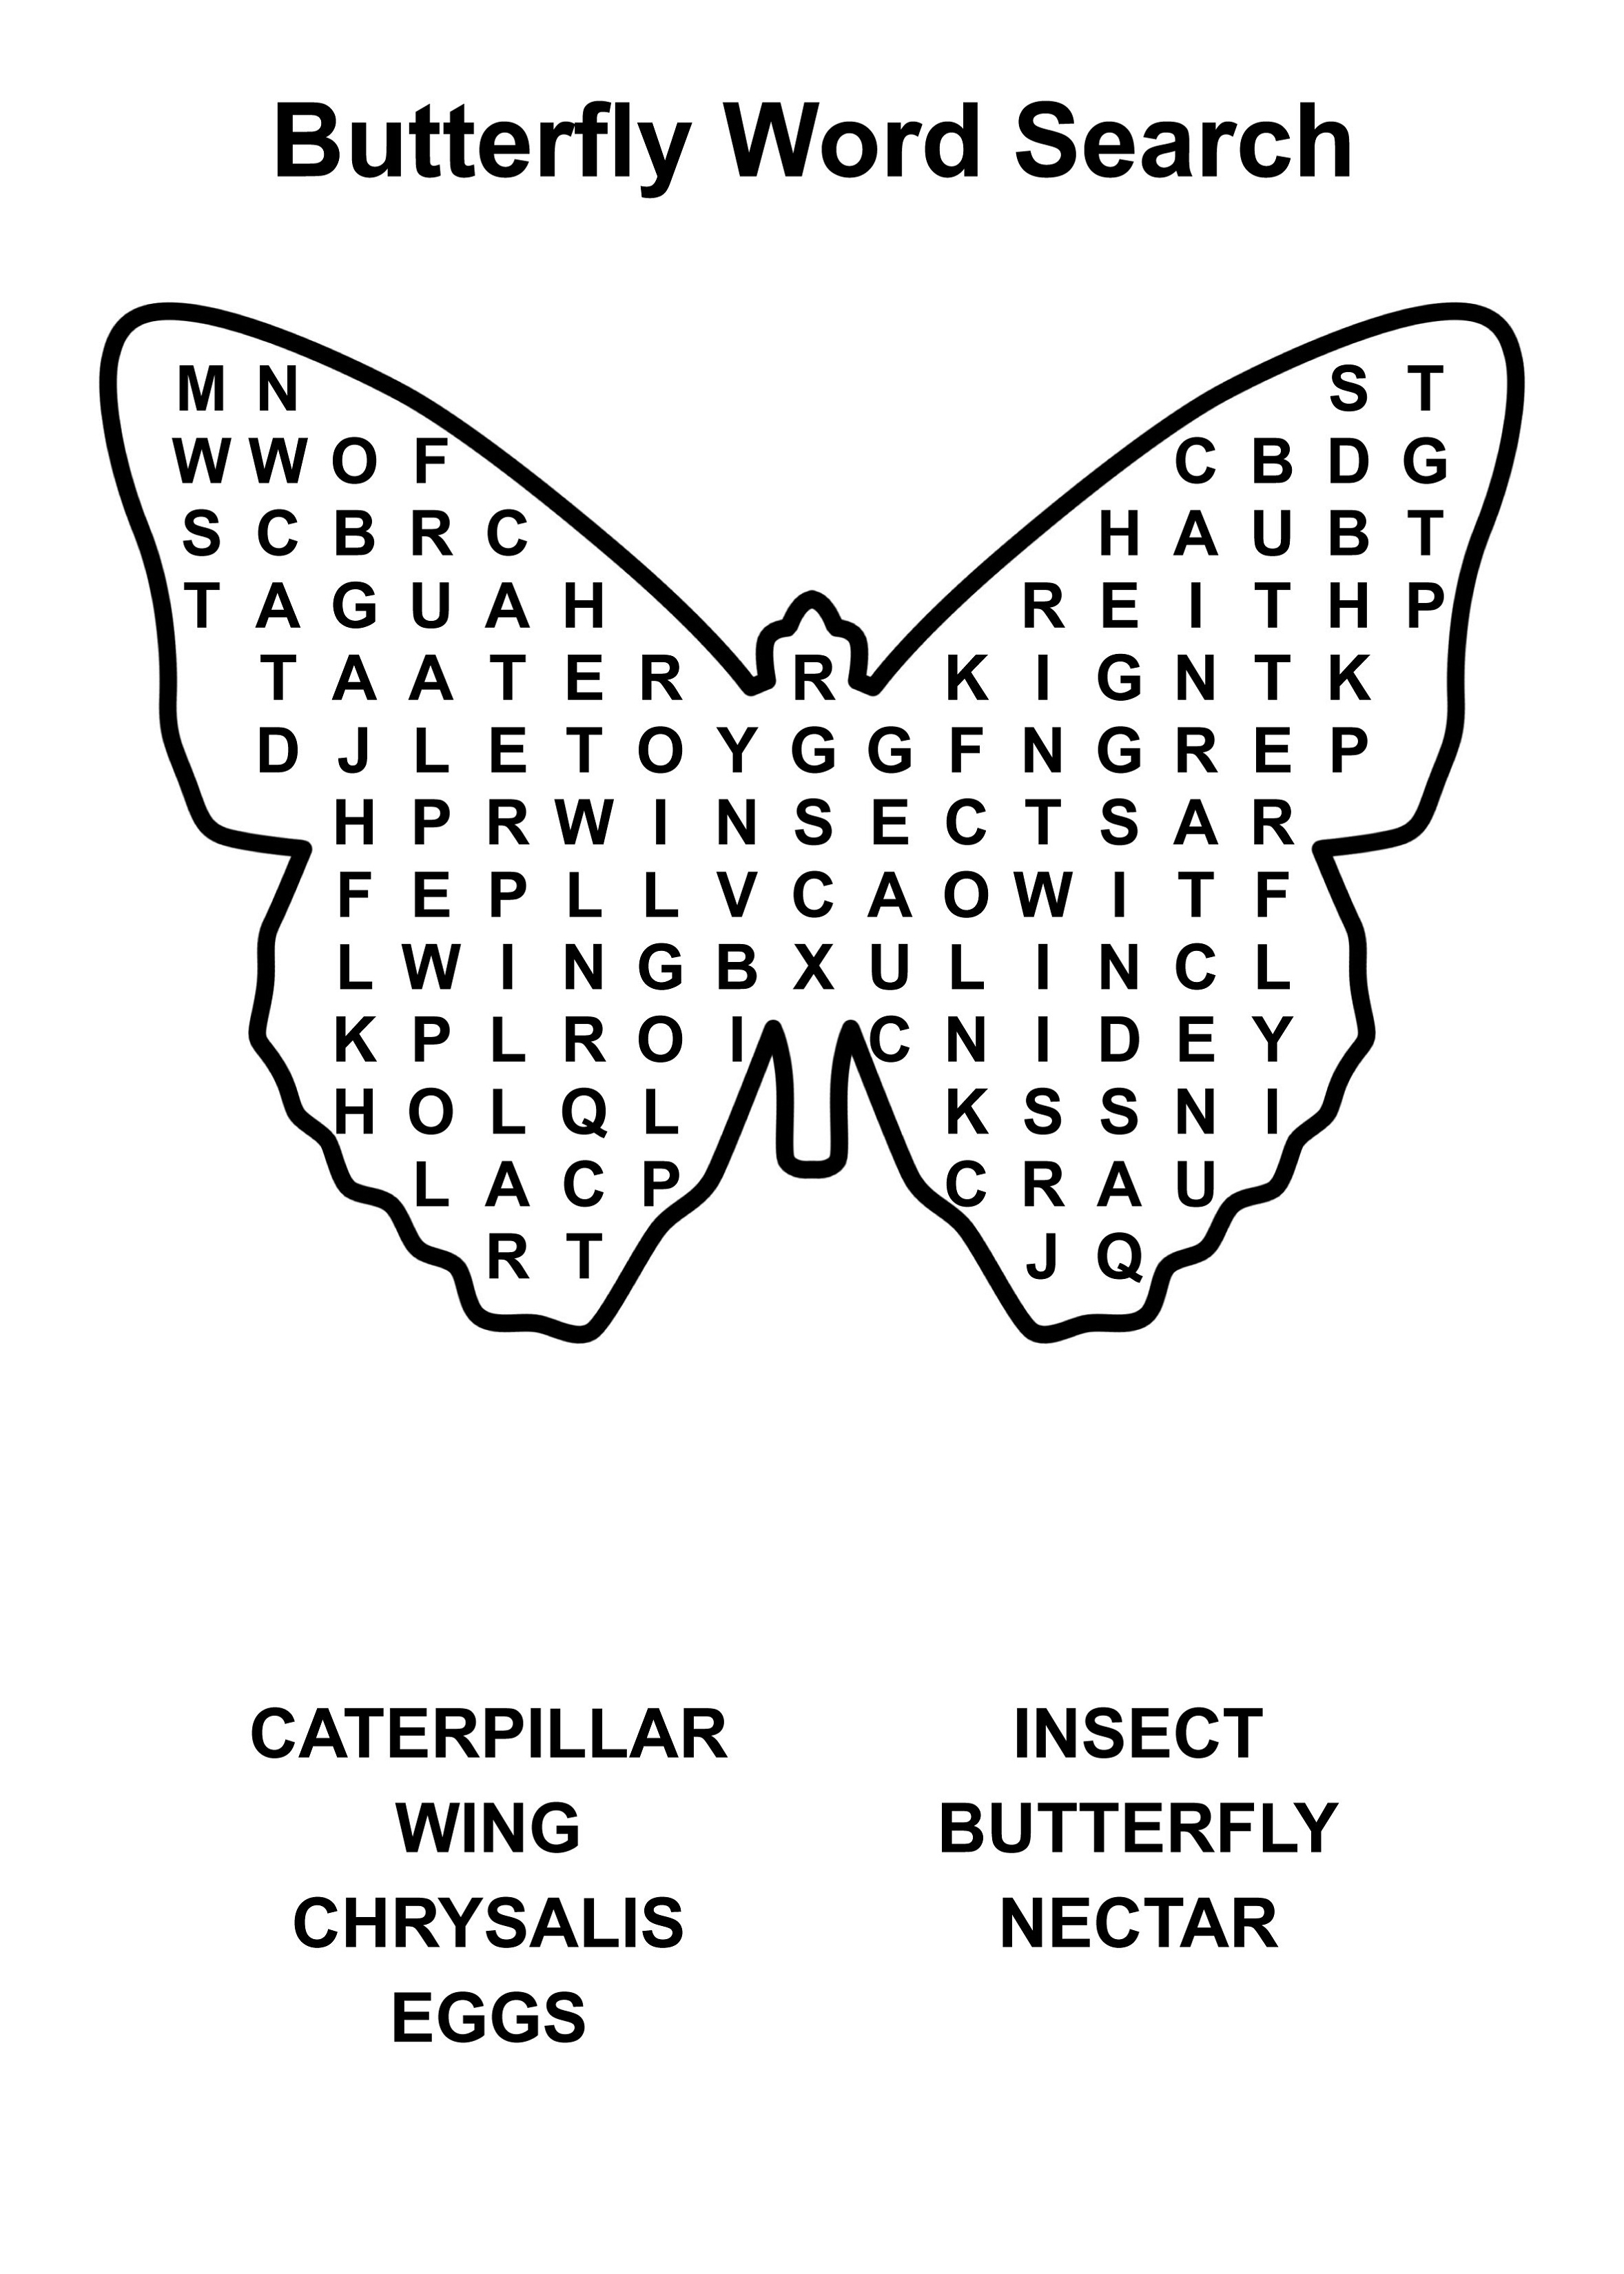 simple-word-search-butterfly